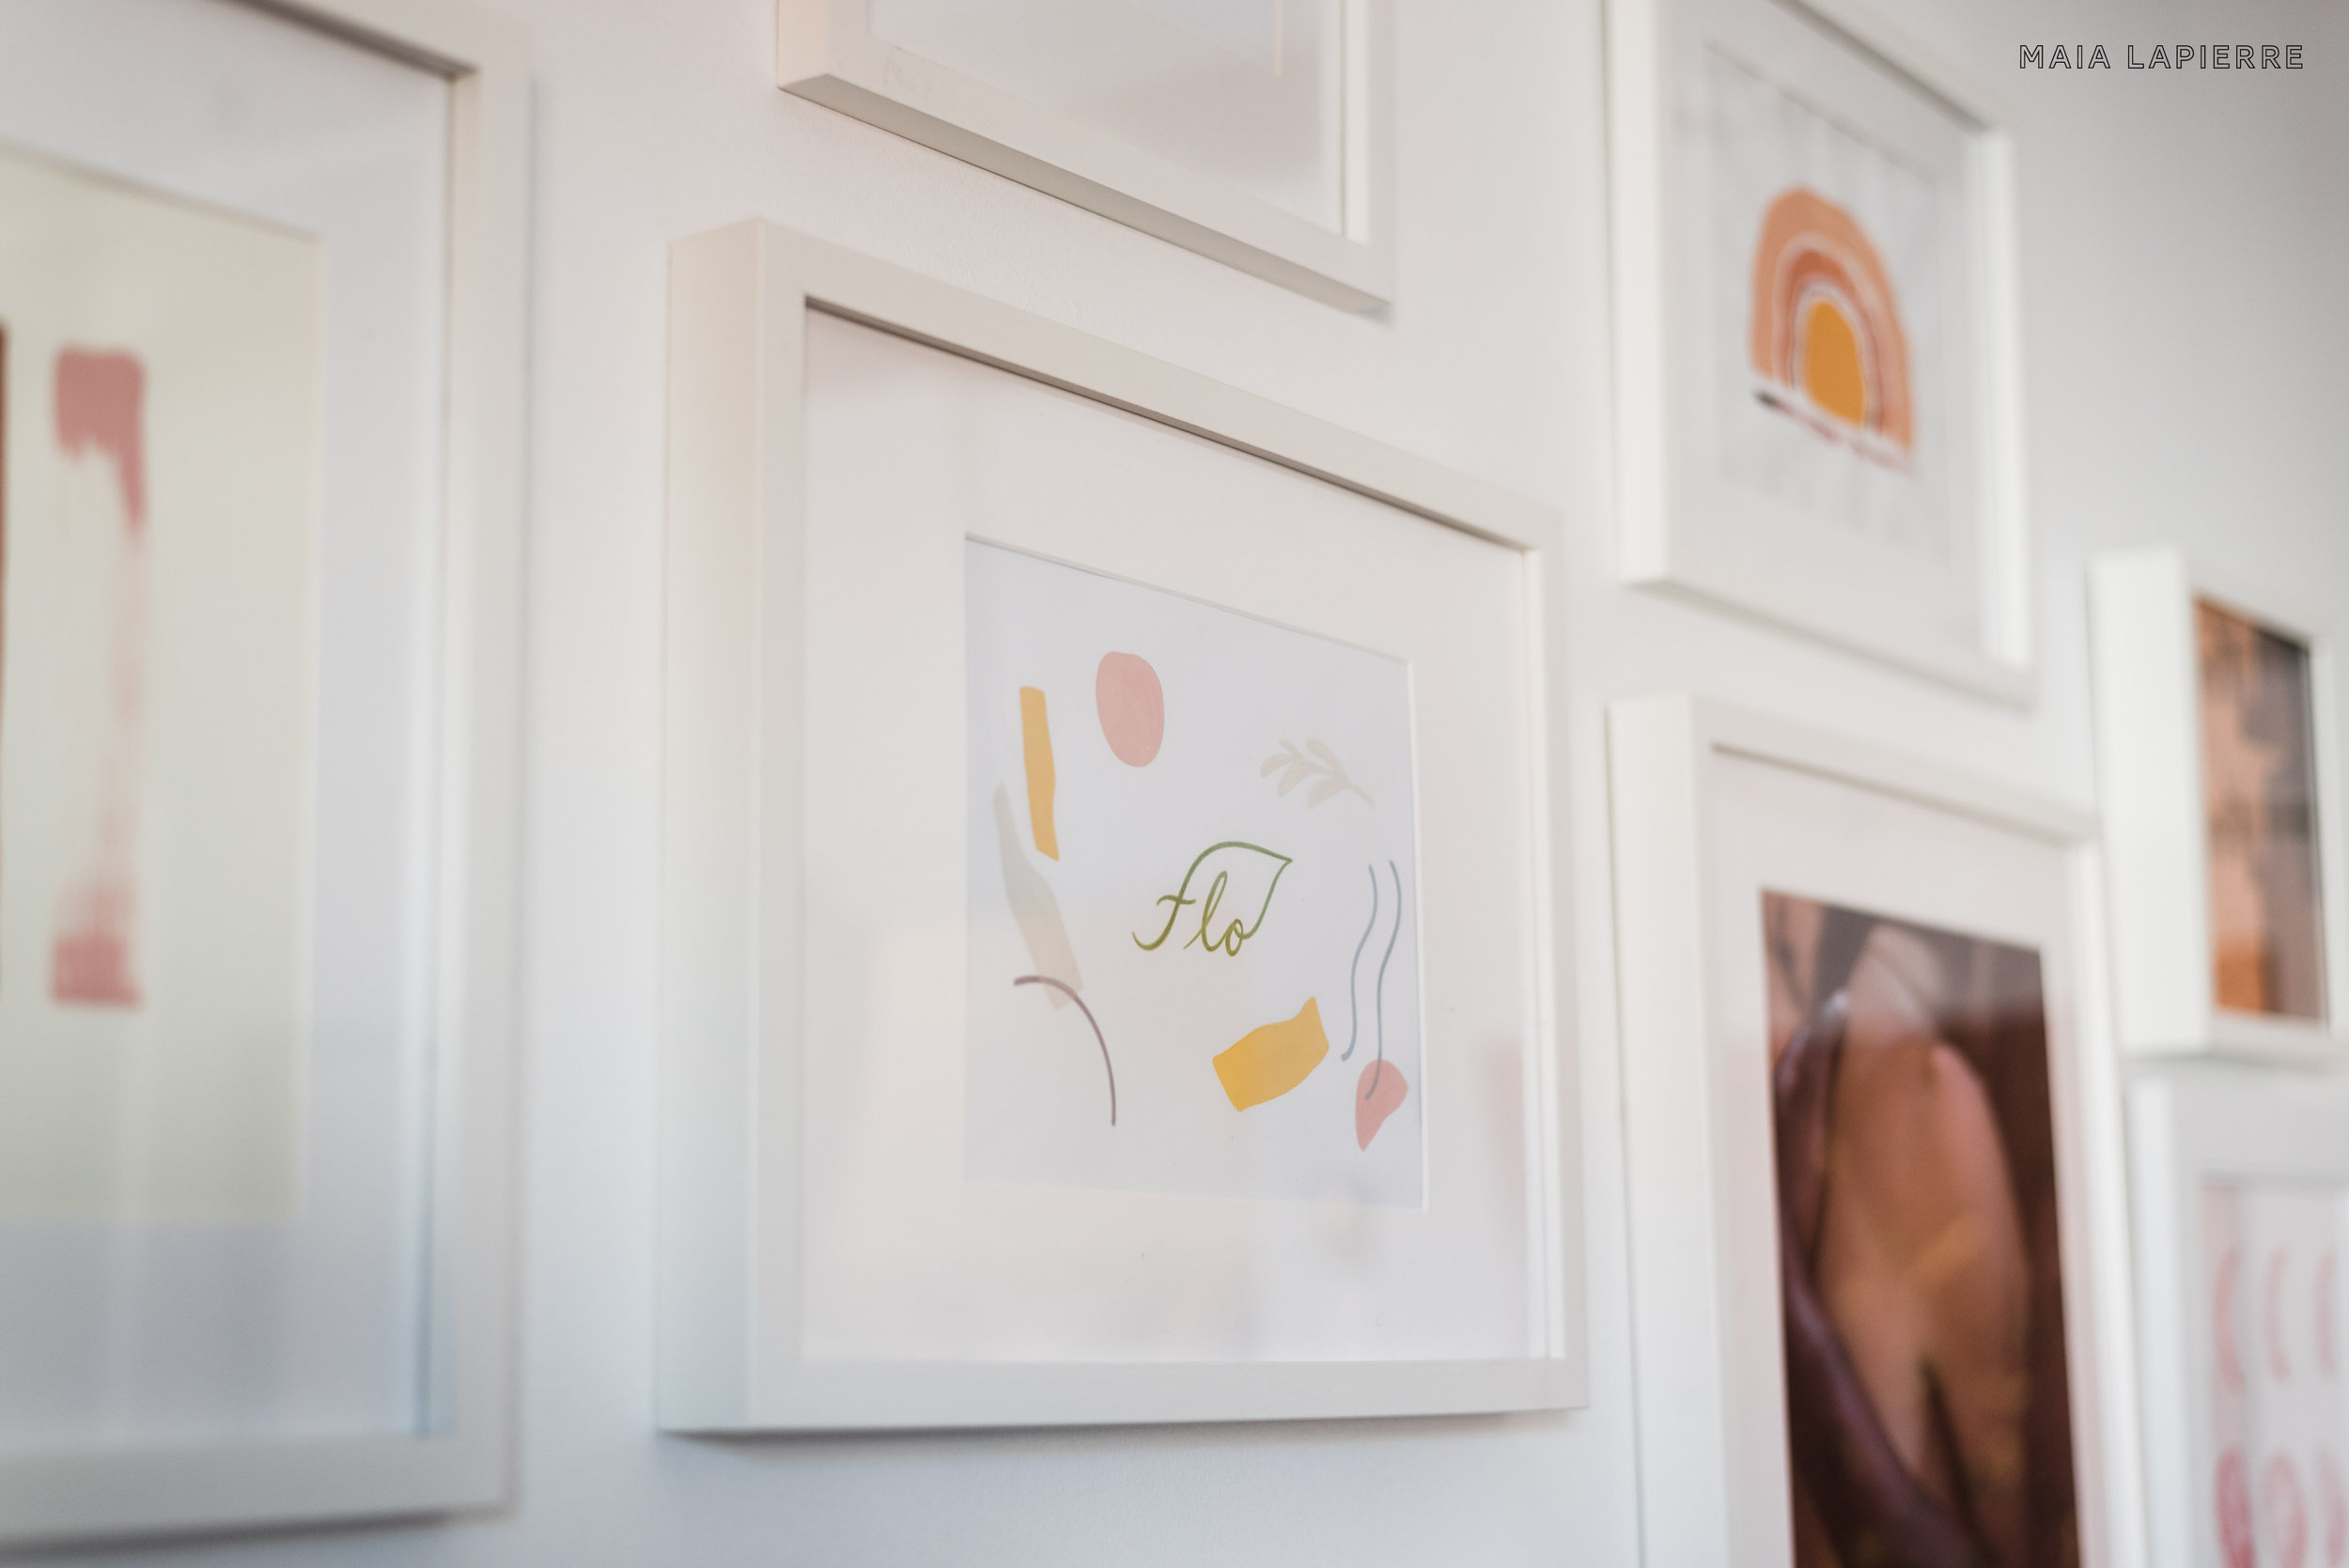 Maia LaPierre Interiors - Flo Meditation Studio Gallery Wall